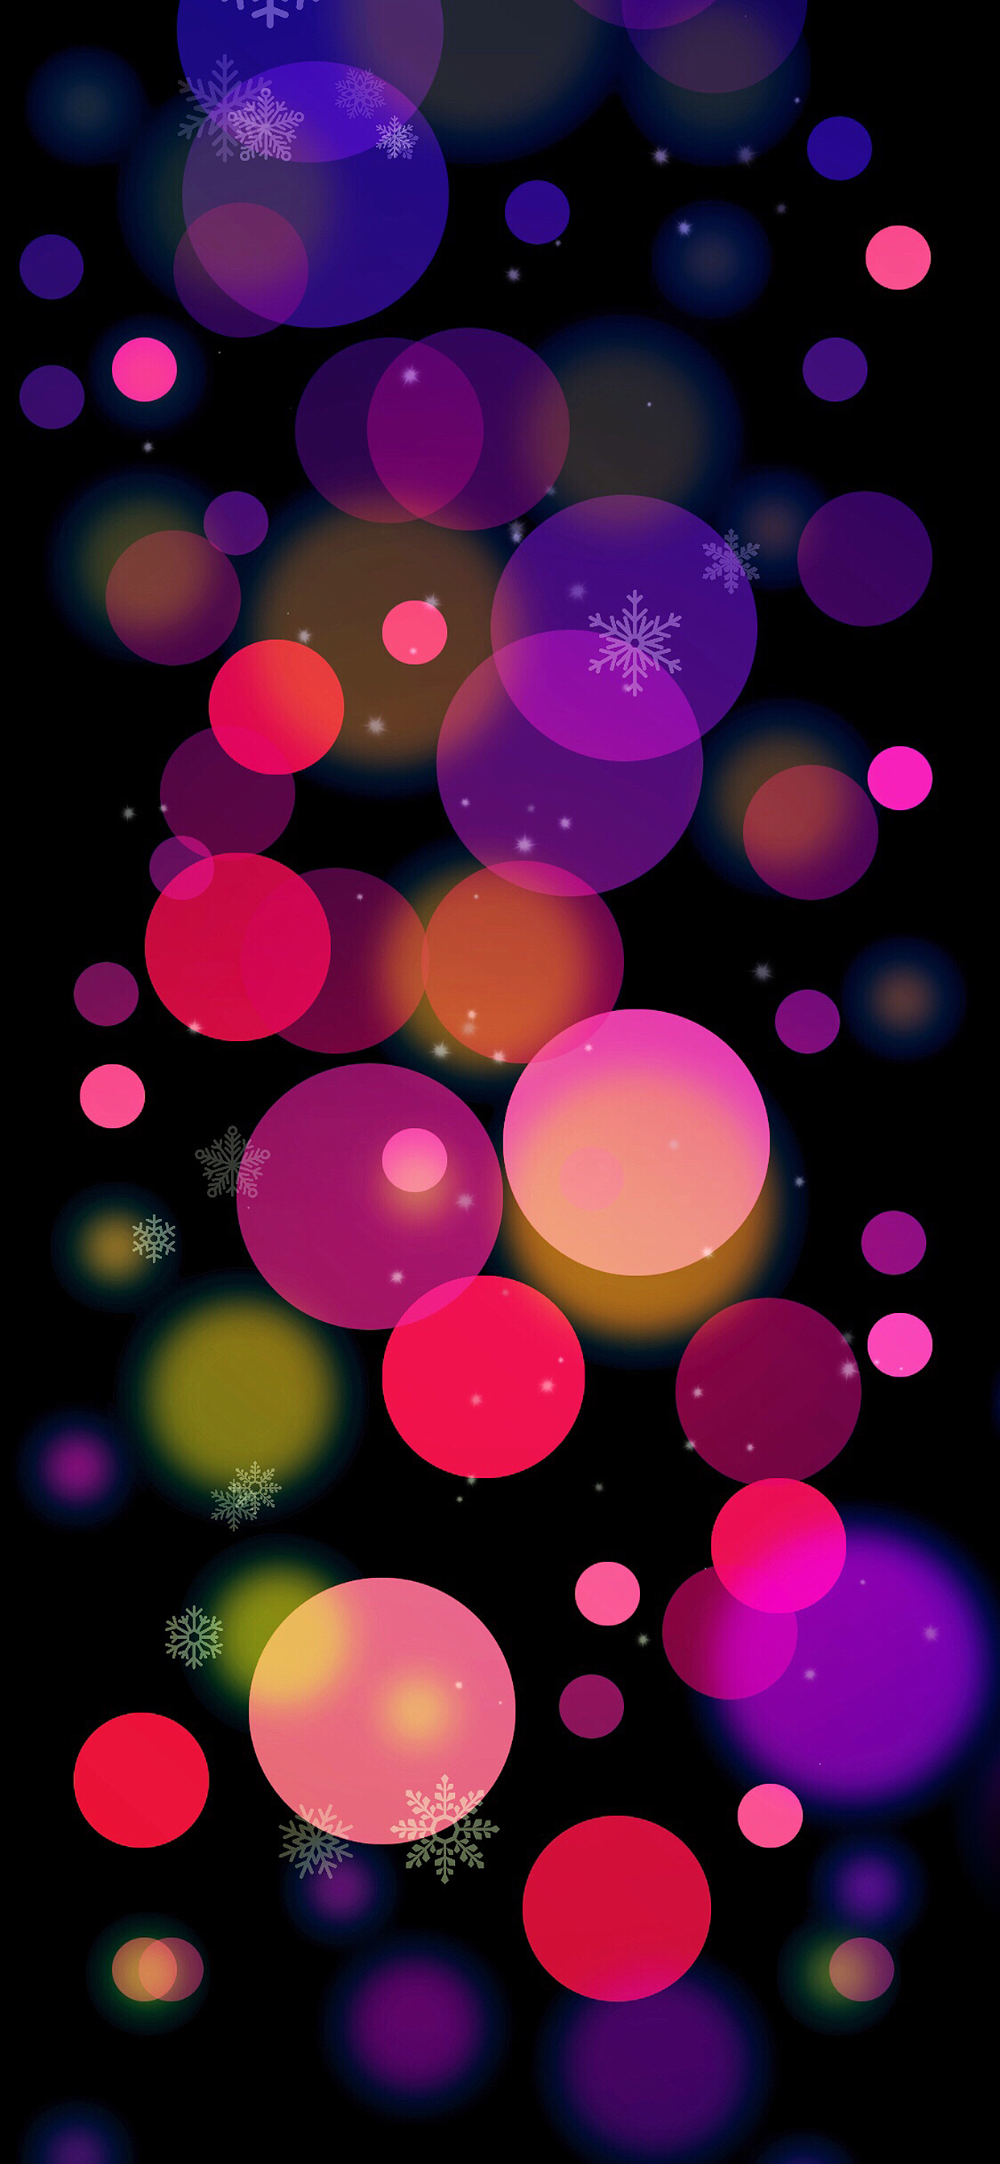 Neon Sign Wallpaper Iphone Xs Max Mywallpapers Site Wallpaper Iphone Christmas Pretty Wallpaper Iphone Iphone Wallpaper Winter